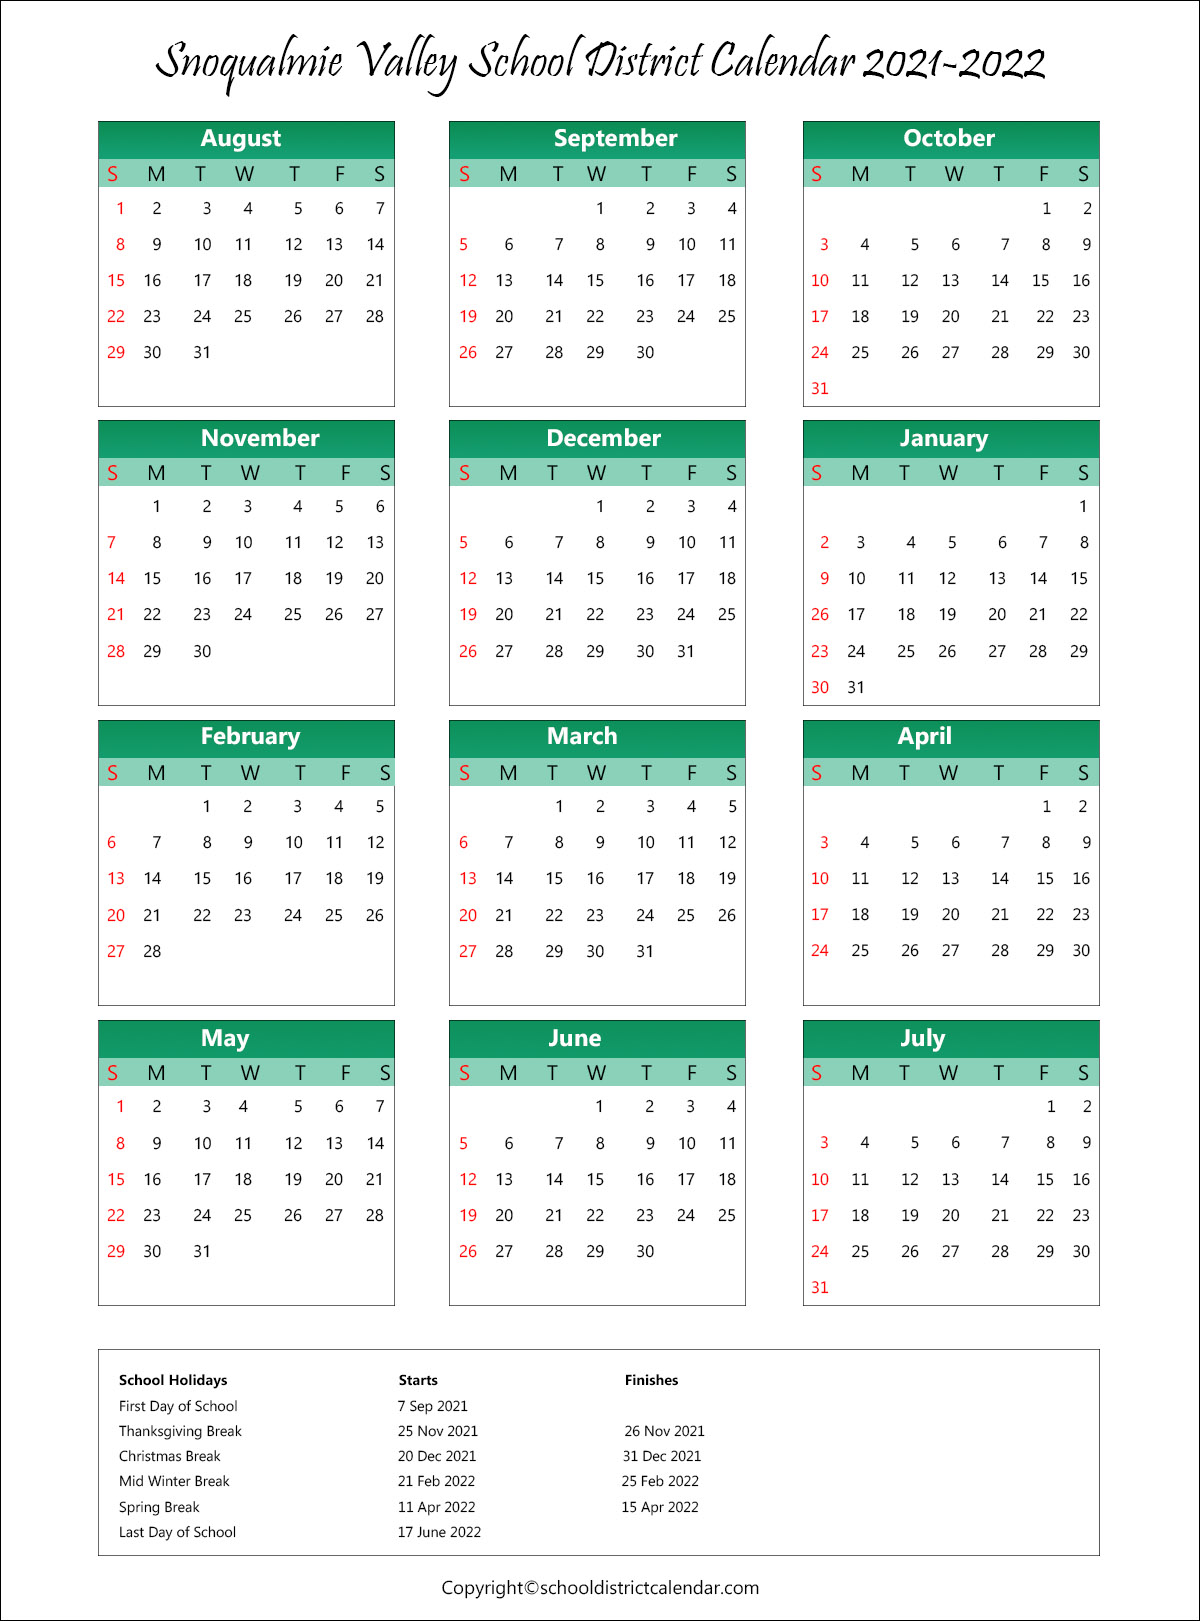 Snoqualmie Valley School District, Washington Calendar Holidays 2021